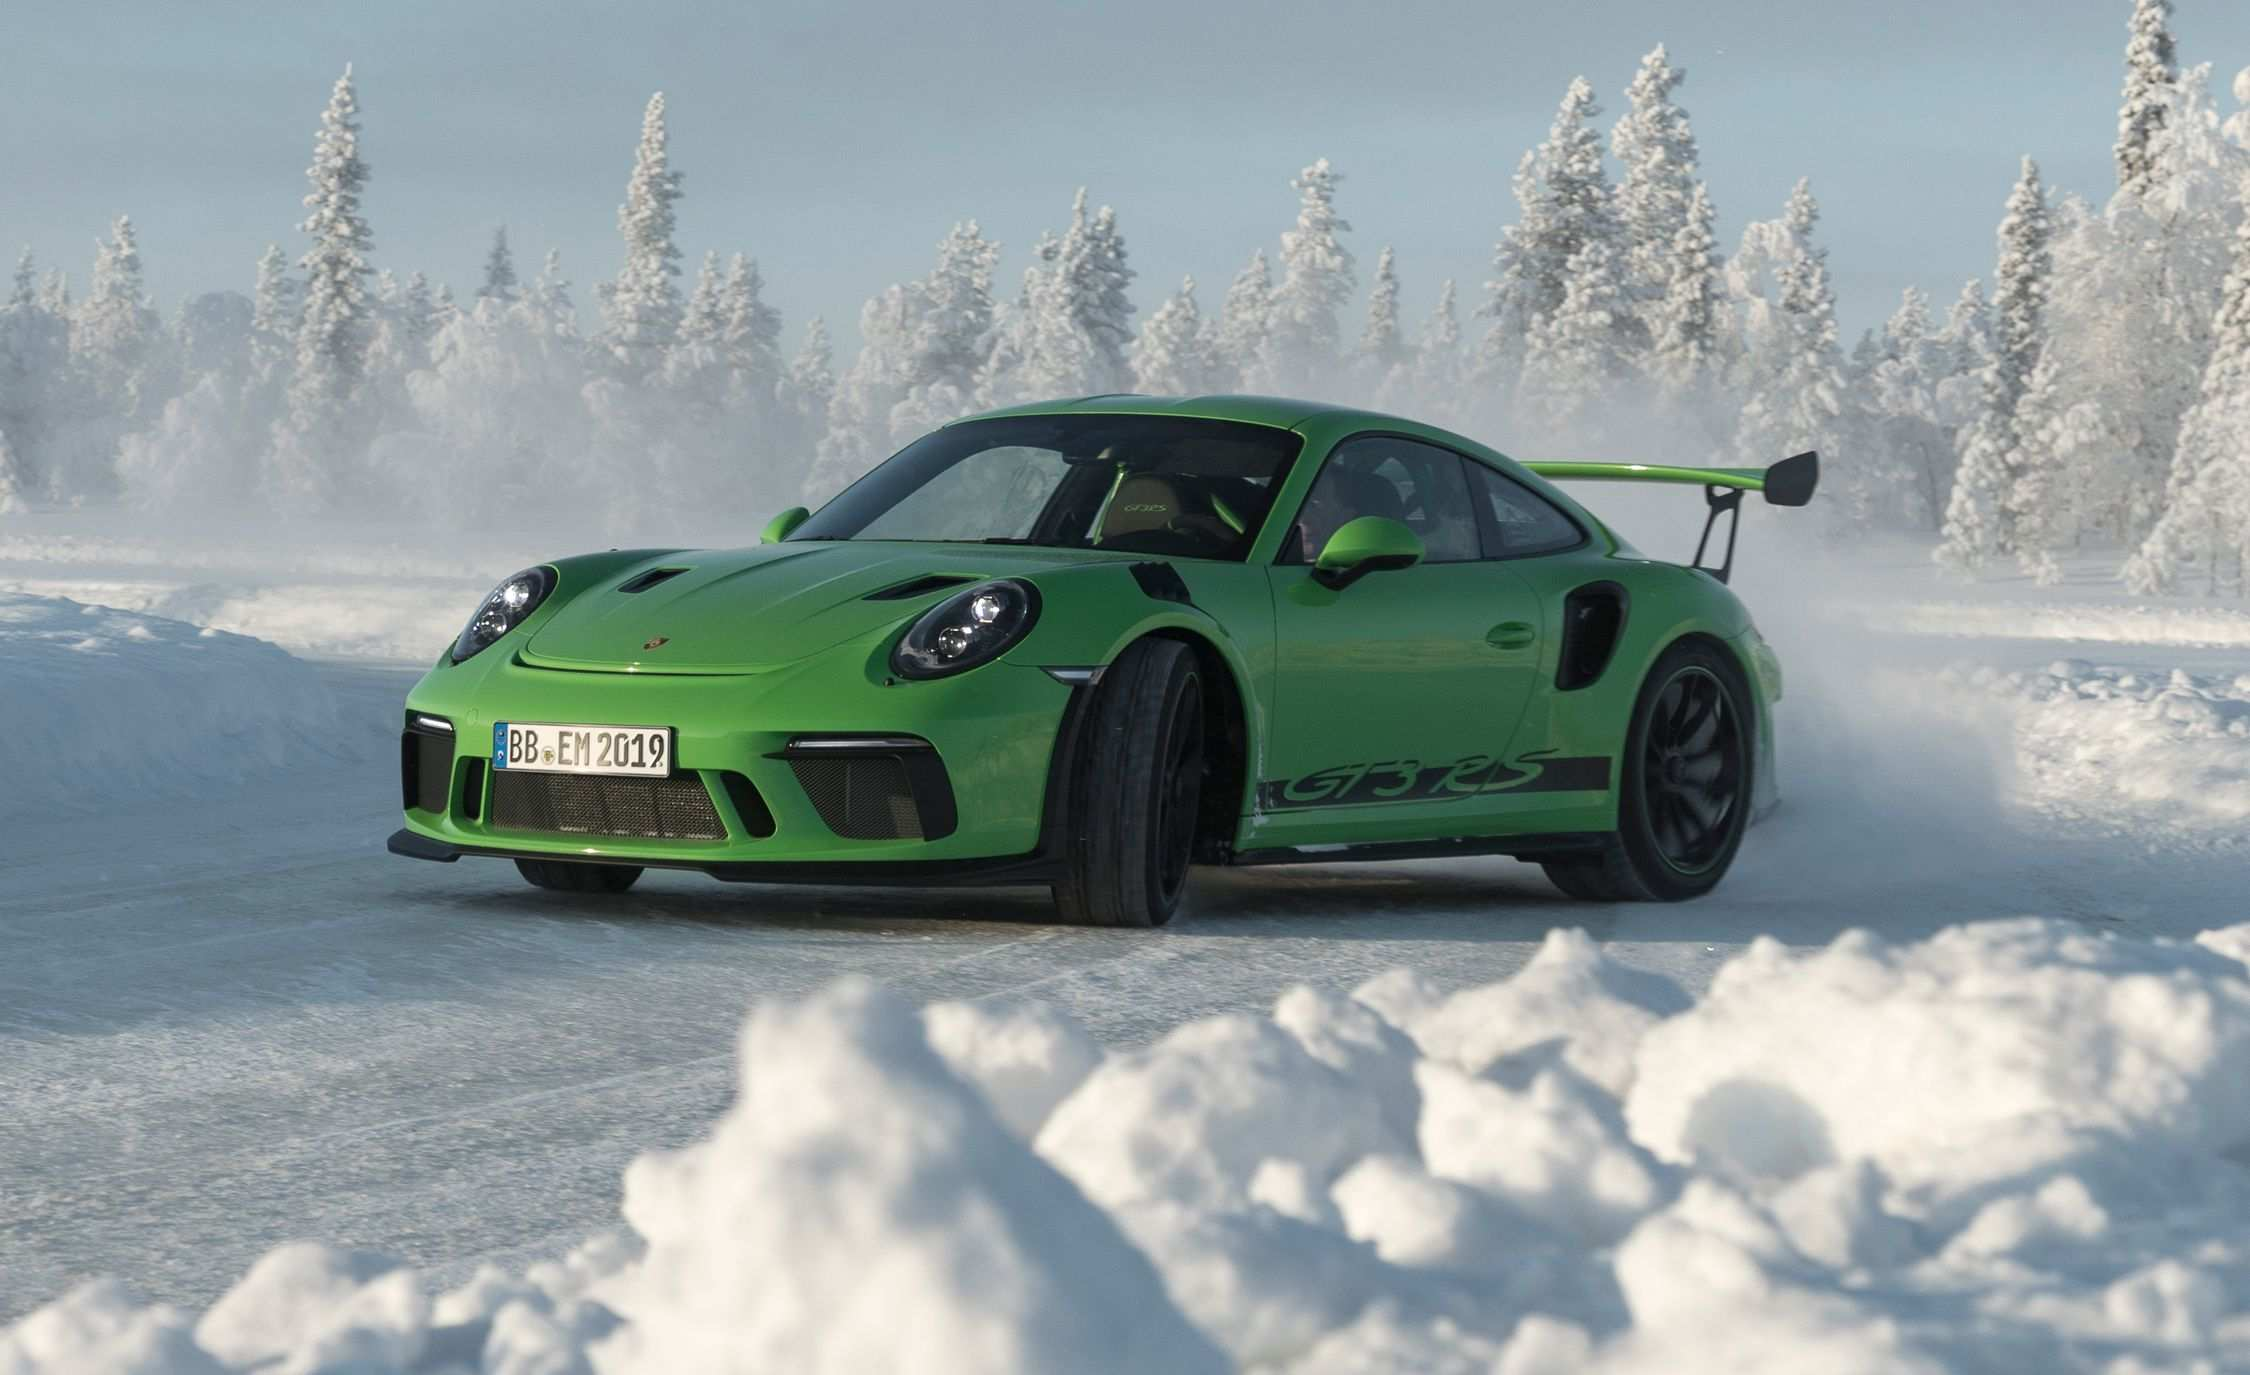 94 Best Review 2019 Porsche Gts Performance with 2019 Porsche Gts